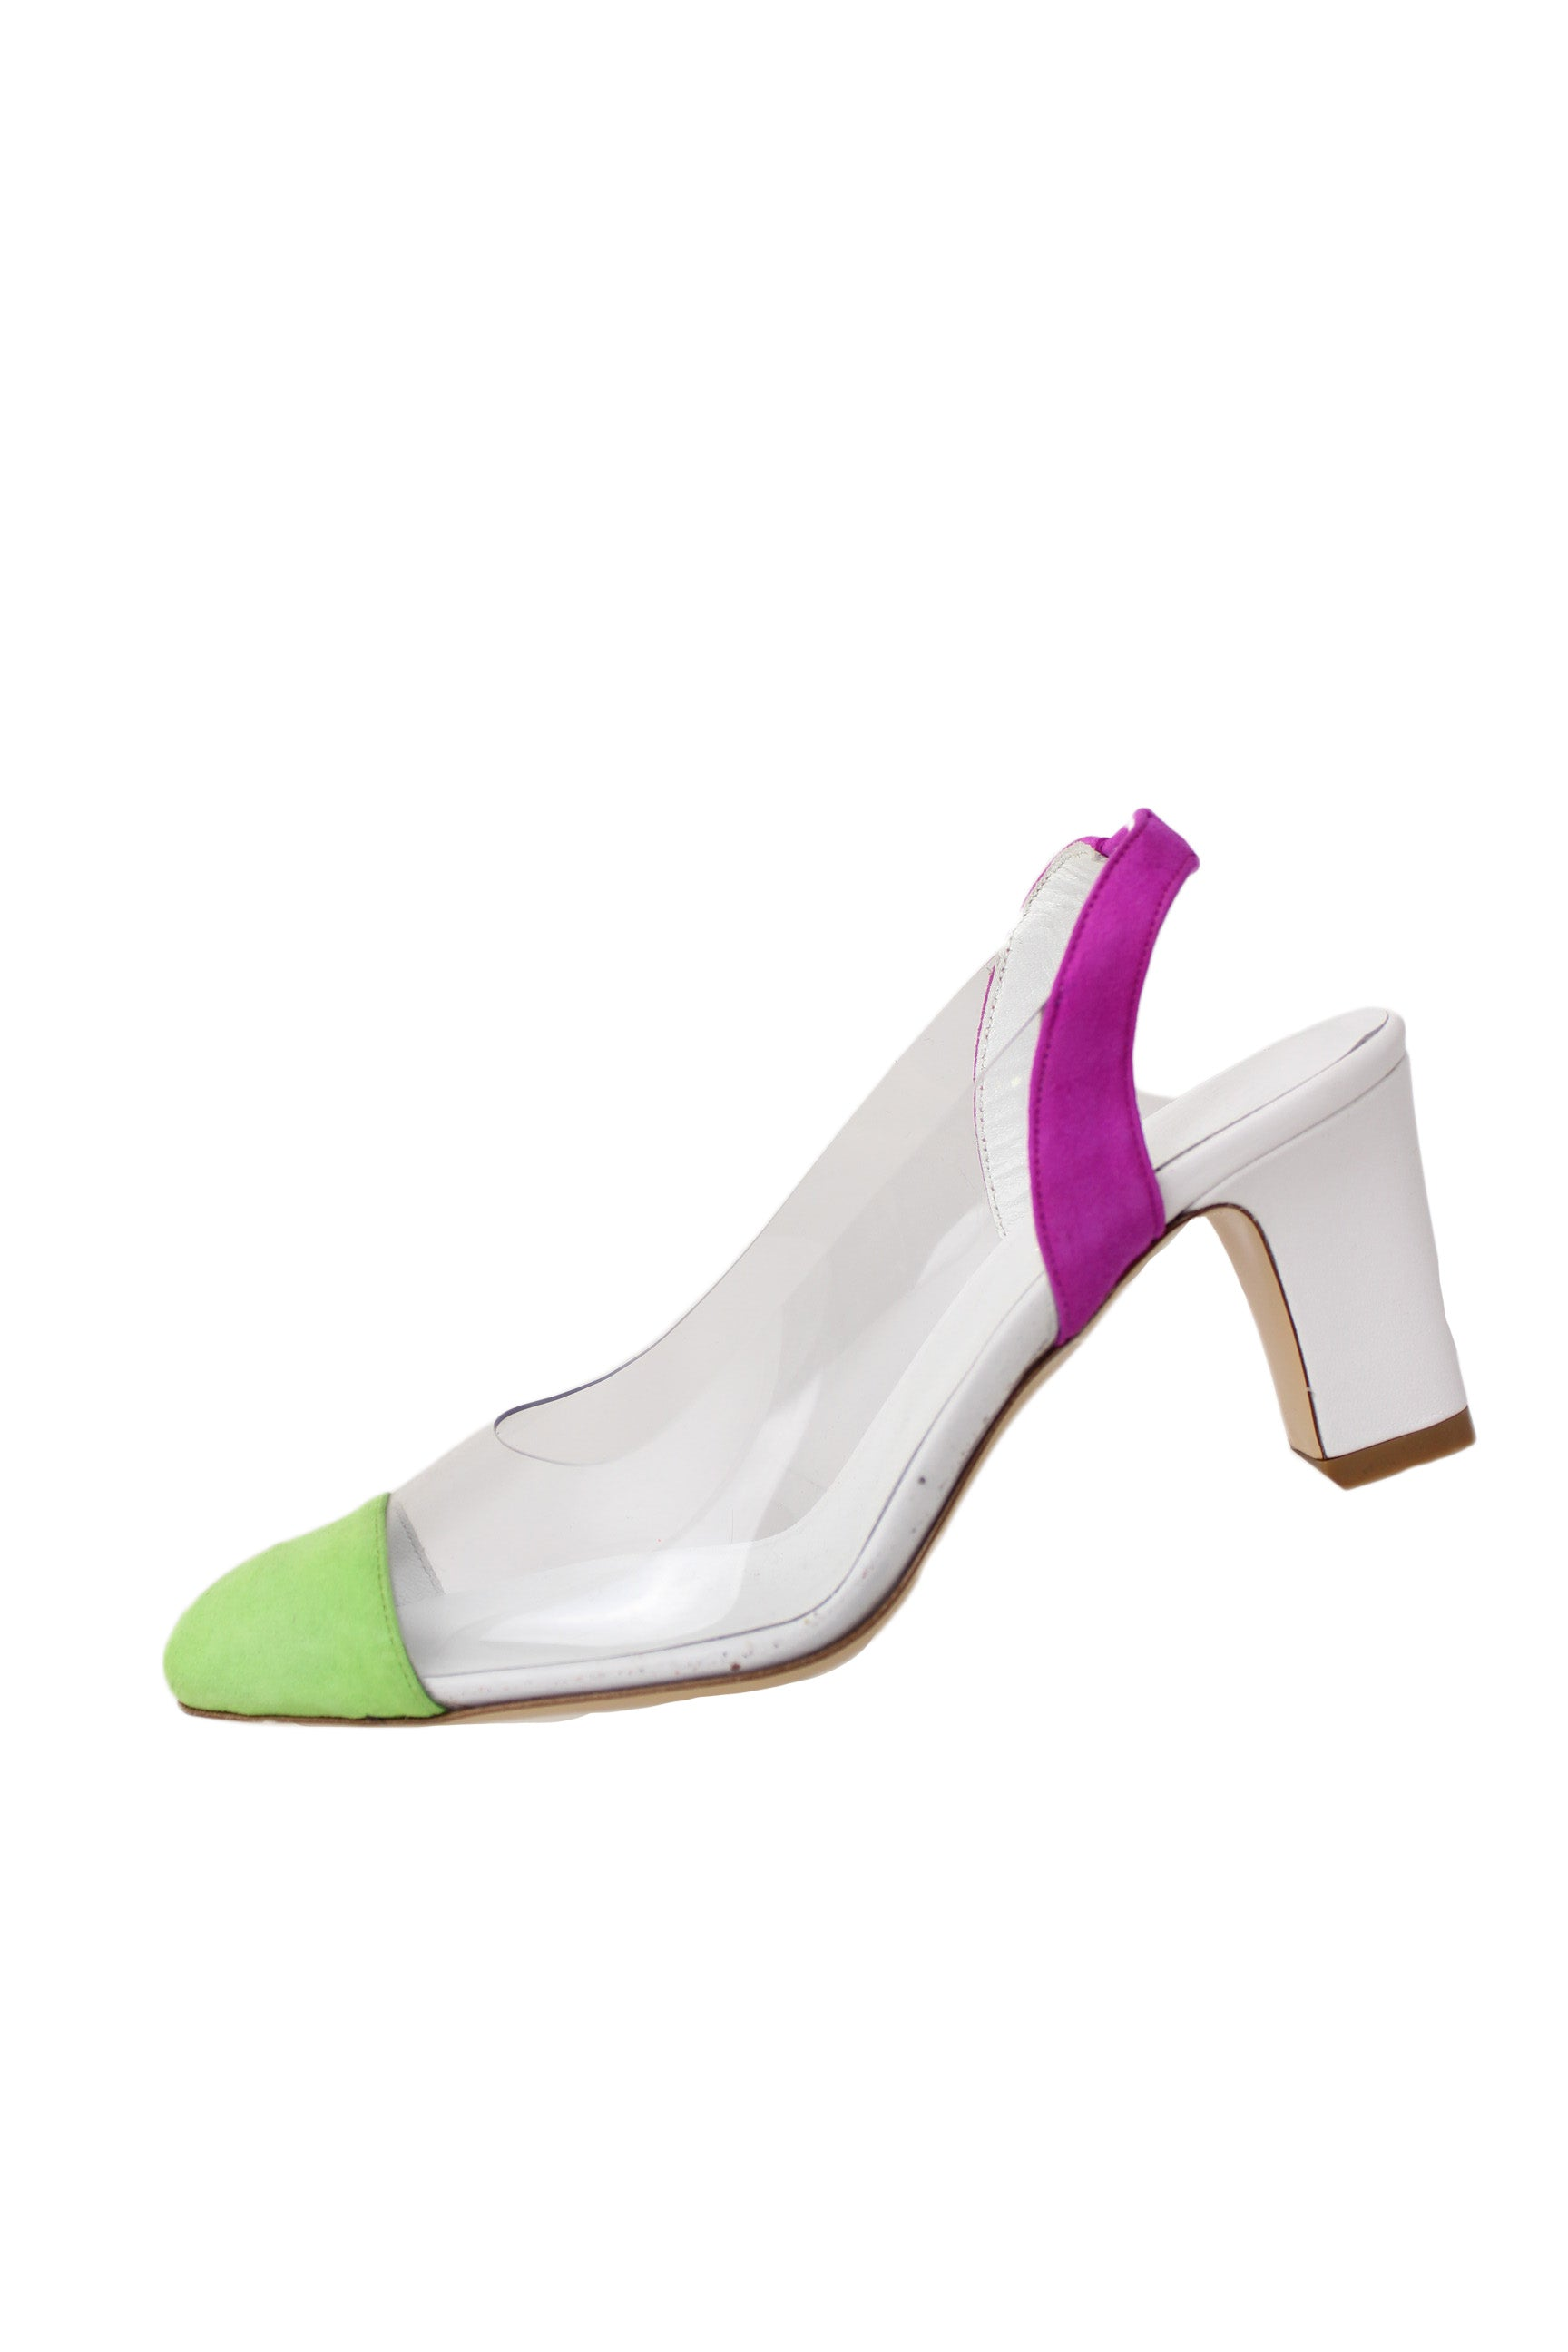 maryam nassir zadeh multicolored slingback heels. features green cap toe, violet suede counter with elastic stretch at center, clear upper and white leather heel and insole.